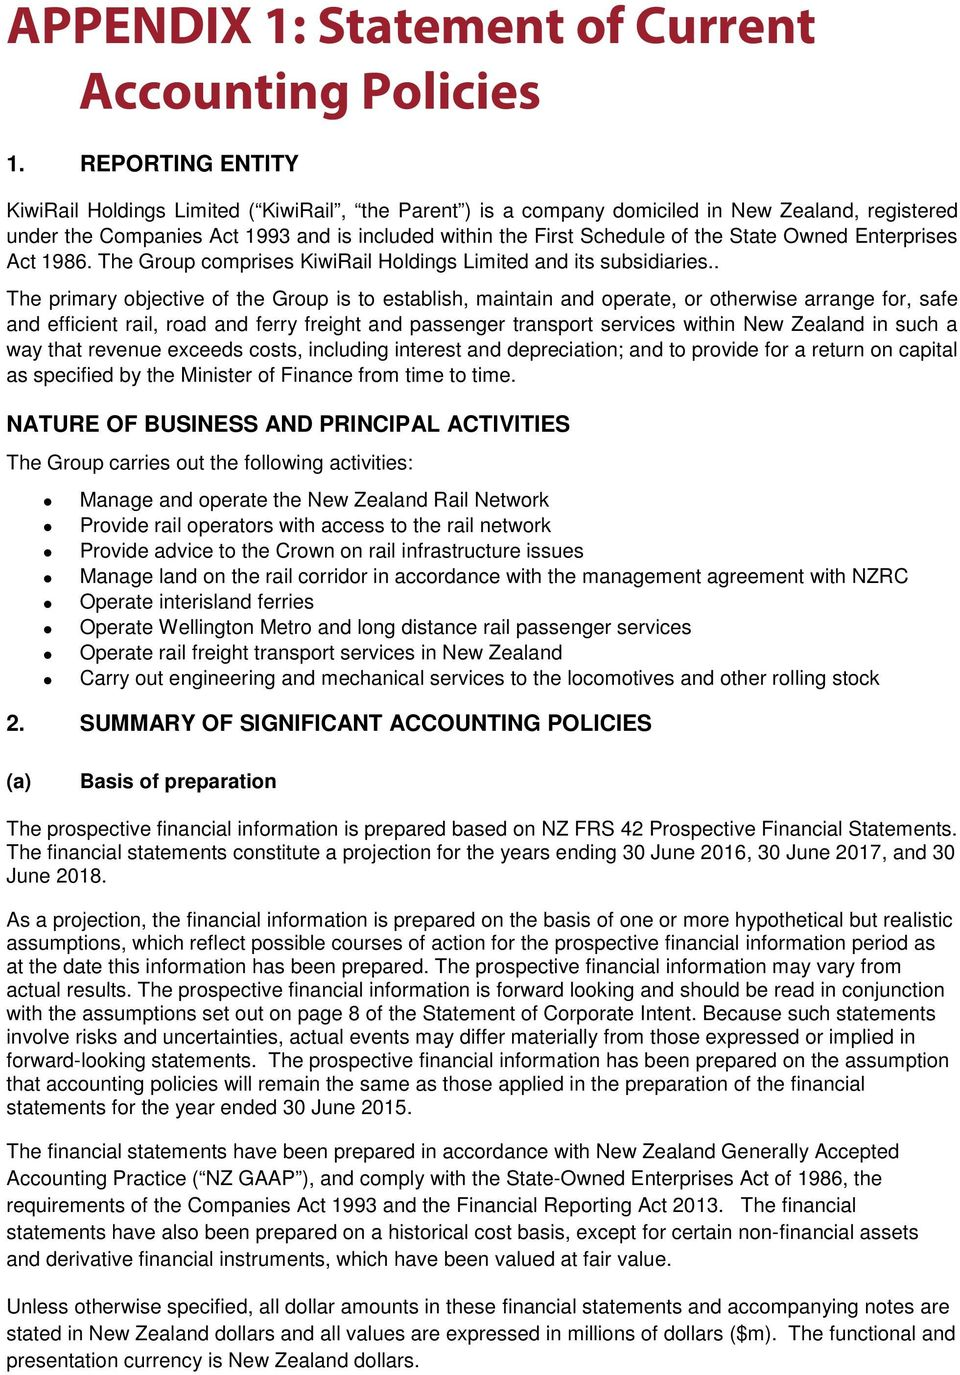 State Owned Enterprises Act 1986. The Group comprises KiwiRail Holdings Limited and its subsidiaries.